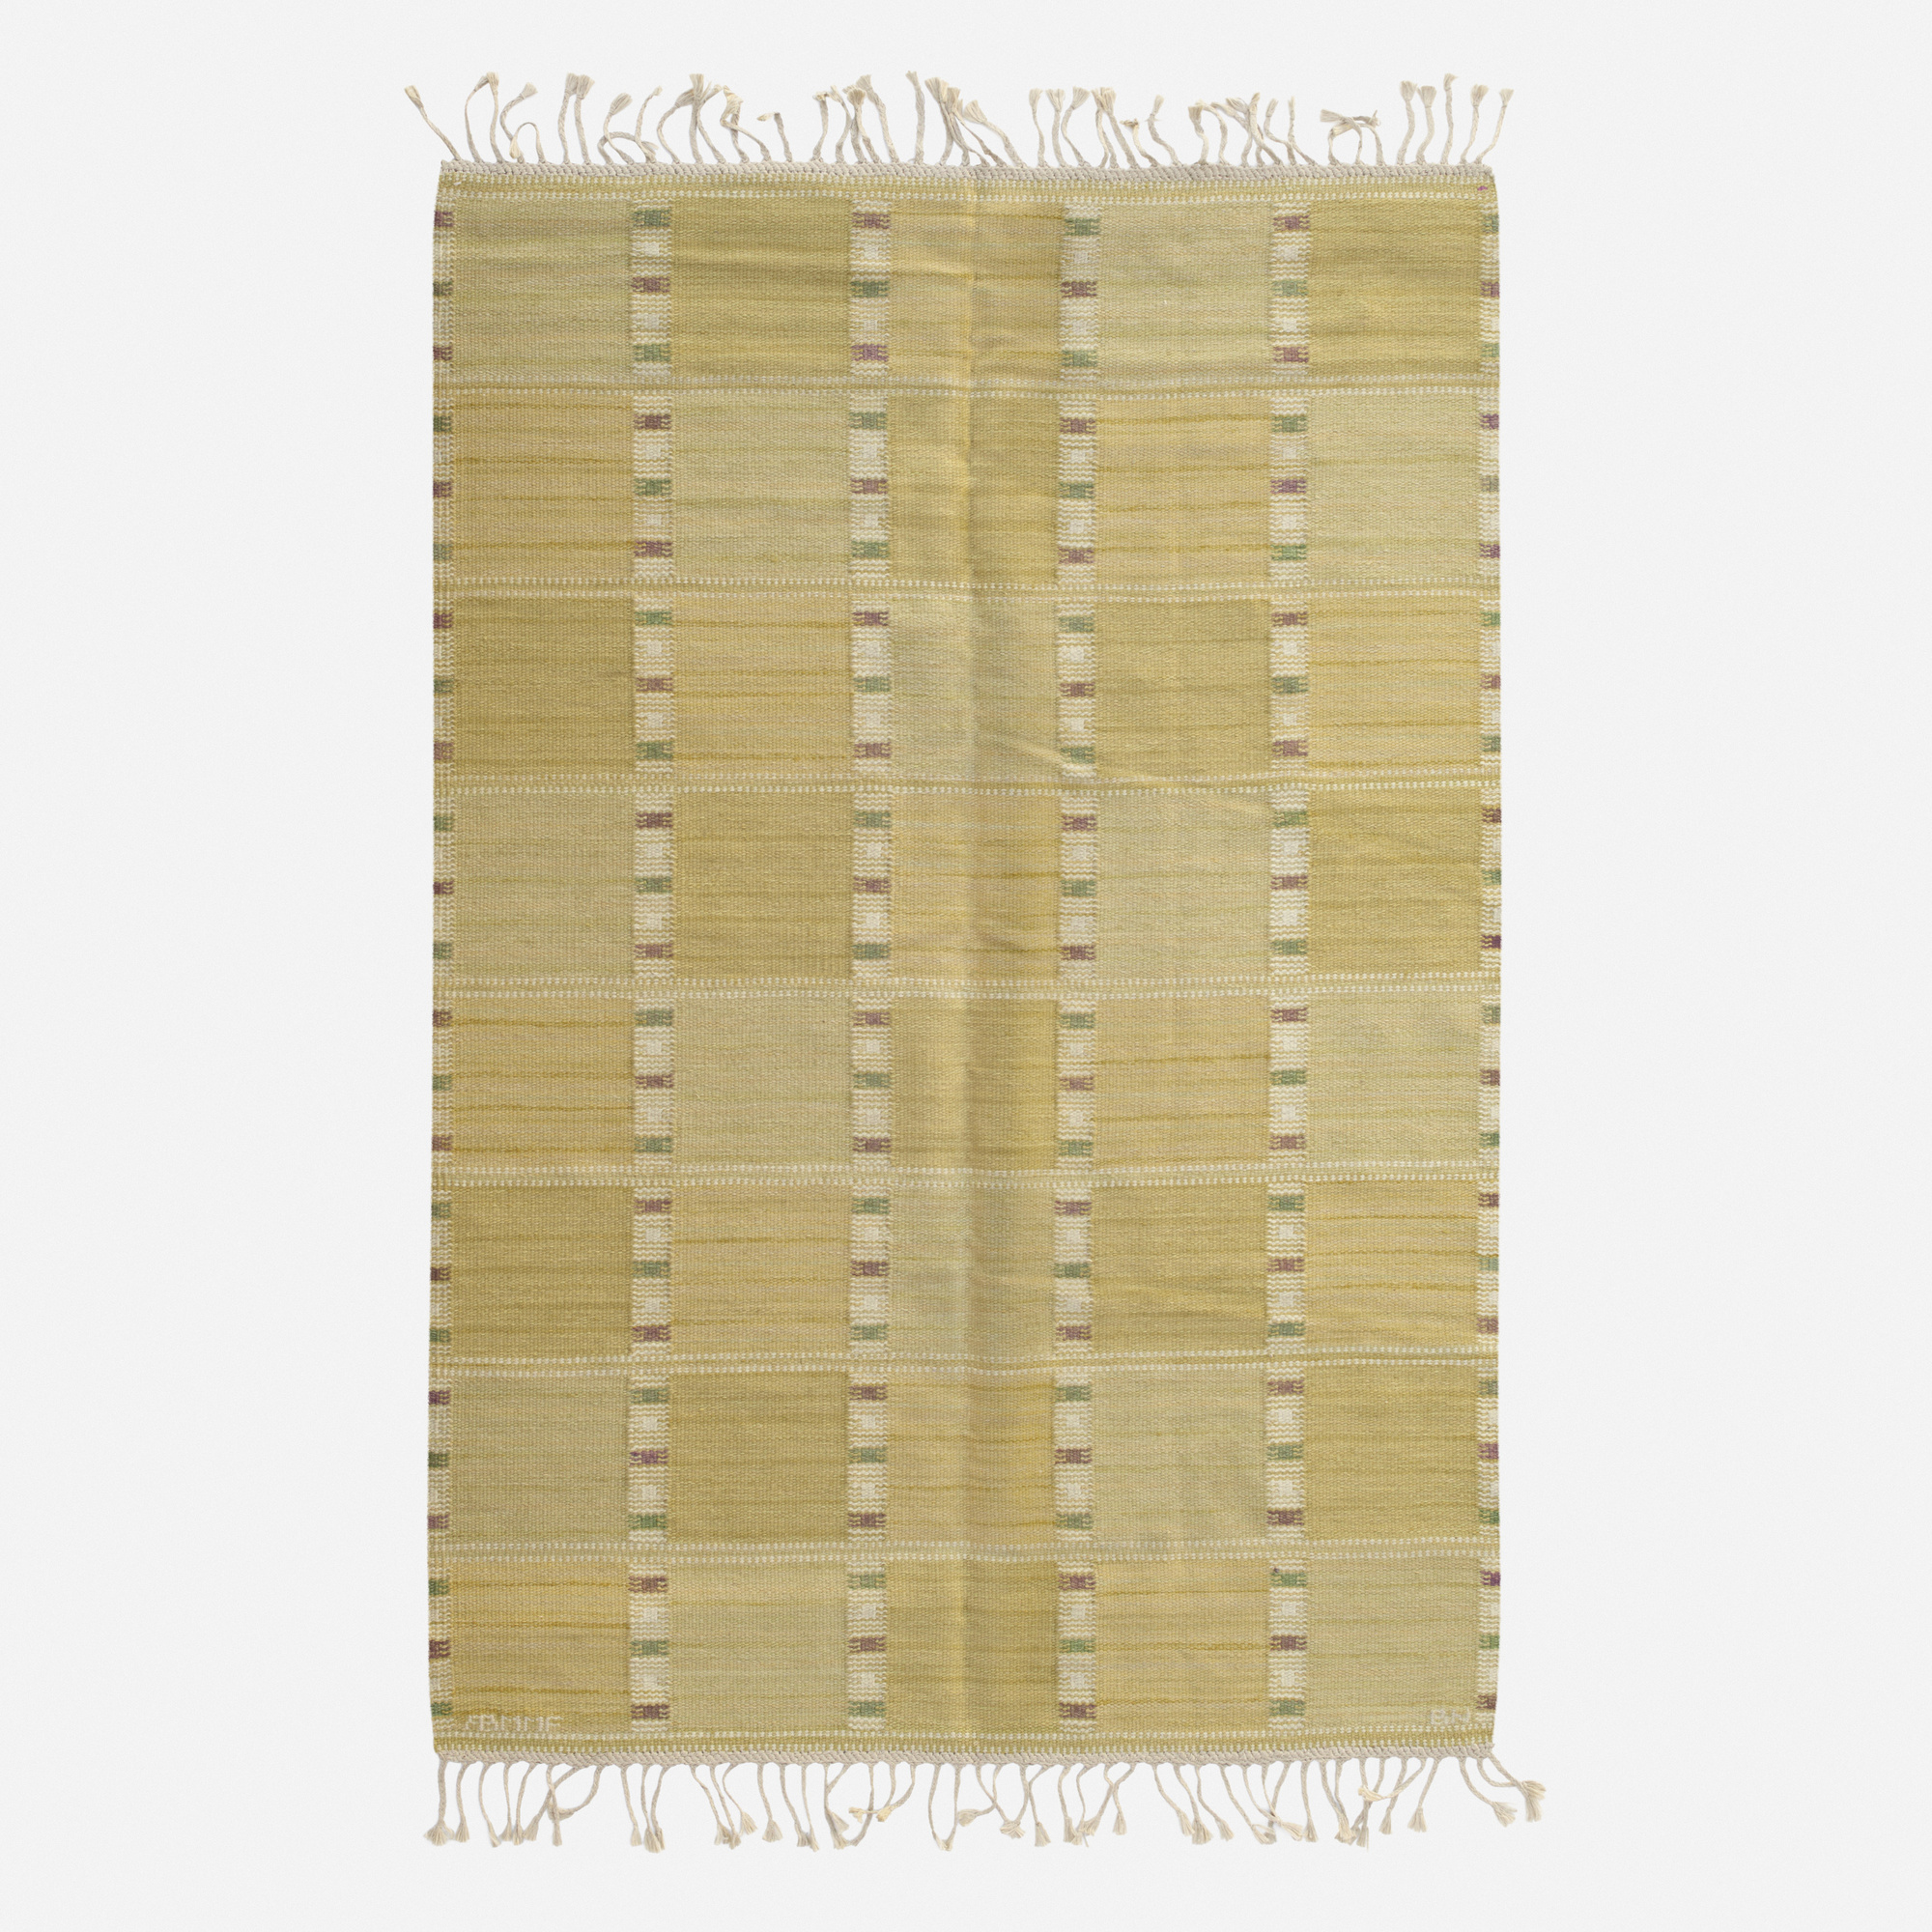 234: Barbro Nilsson / Falurutan flatweave carpet (1 of 2)